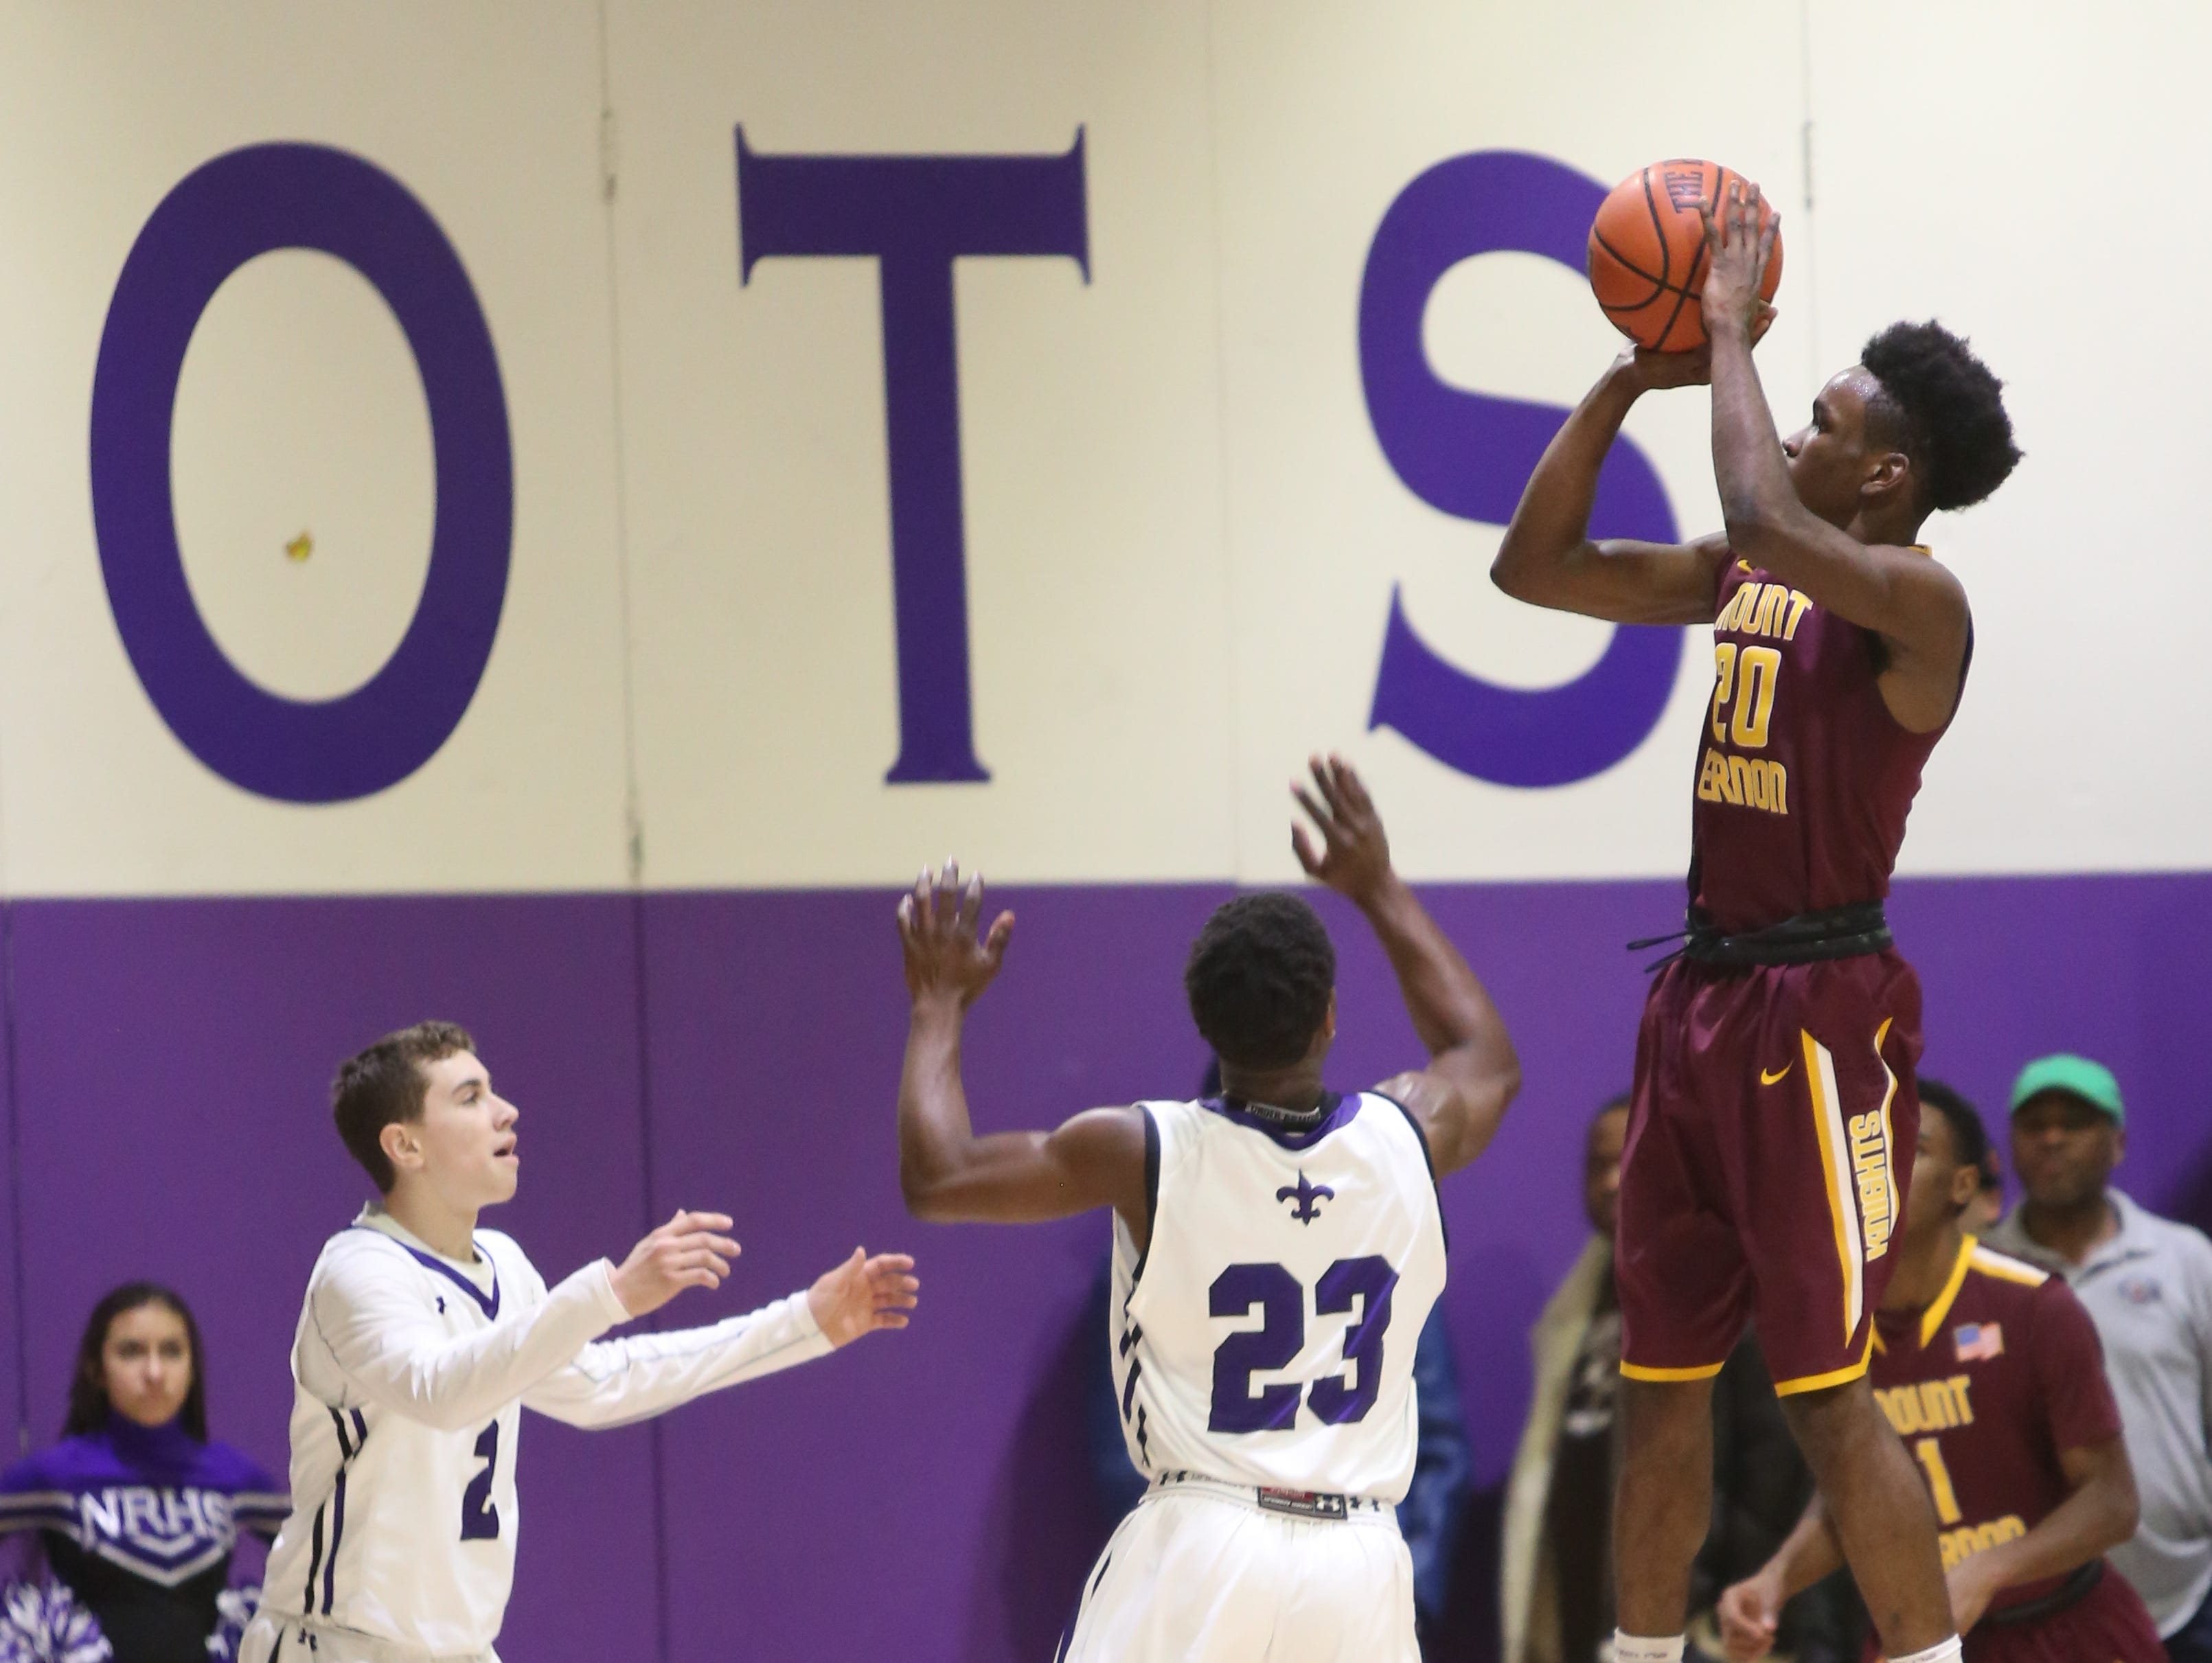 Marco Morency (20) of Mount Vernon goes up for a jump shot over Jake Mieto (2) and Chris Blades (23) of New Rochelle during game action at New Rochelle High School on Jan 4, 2016. Mount Vernon defeated New Rochelle 72-63.